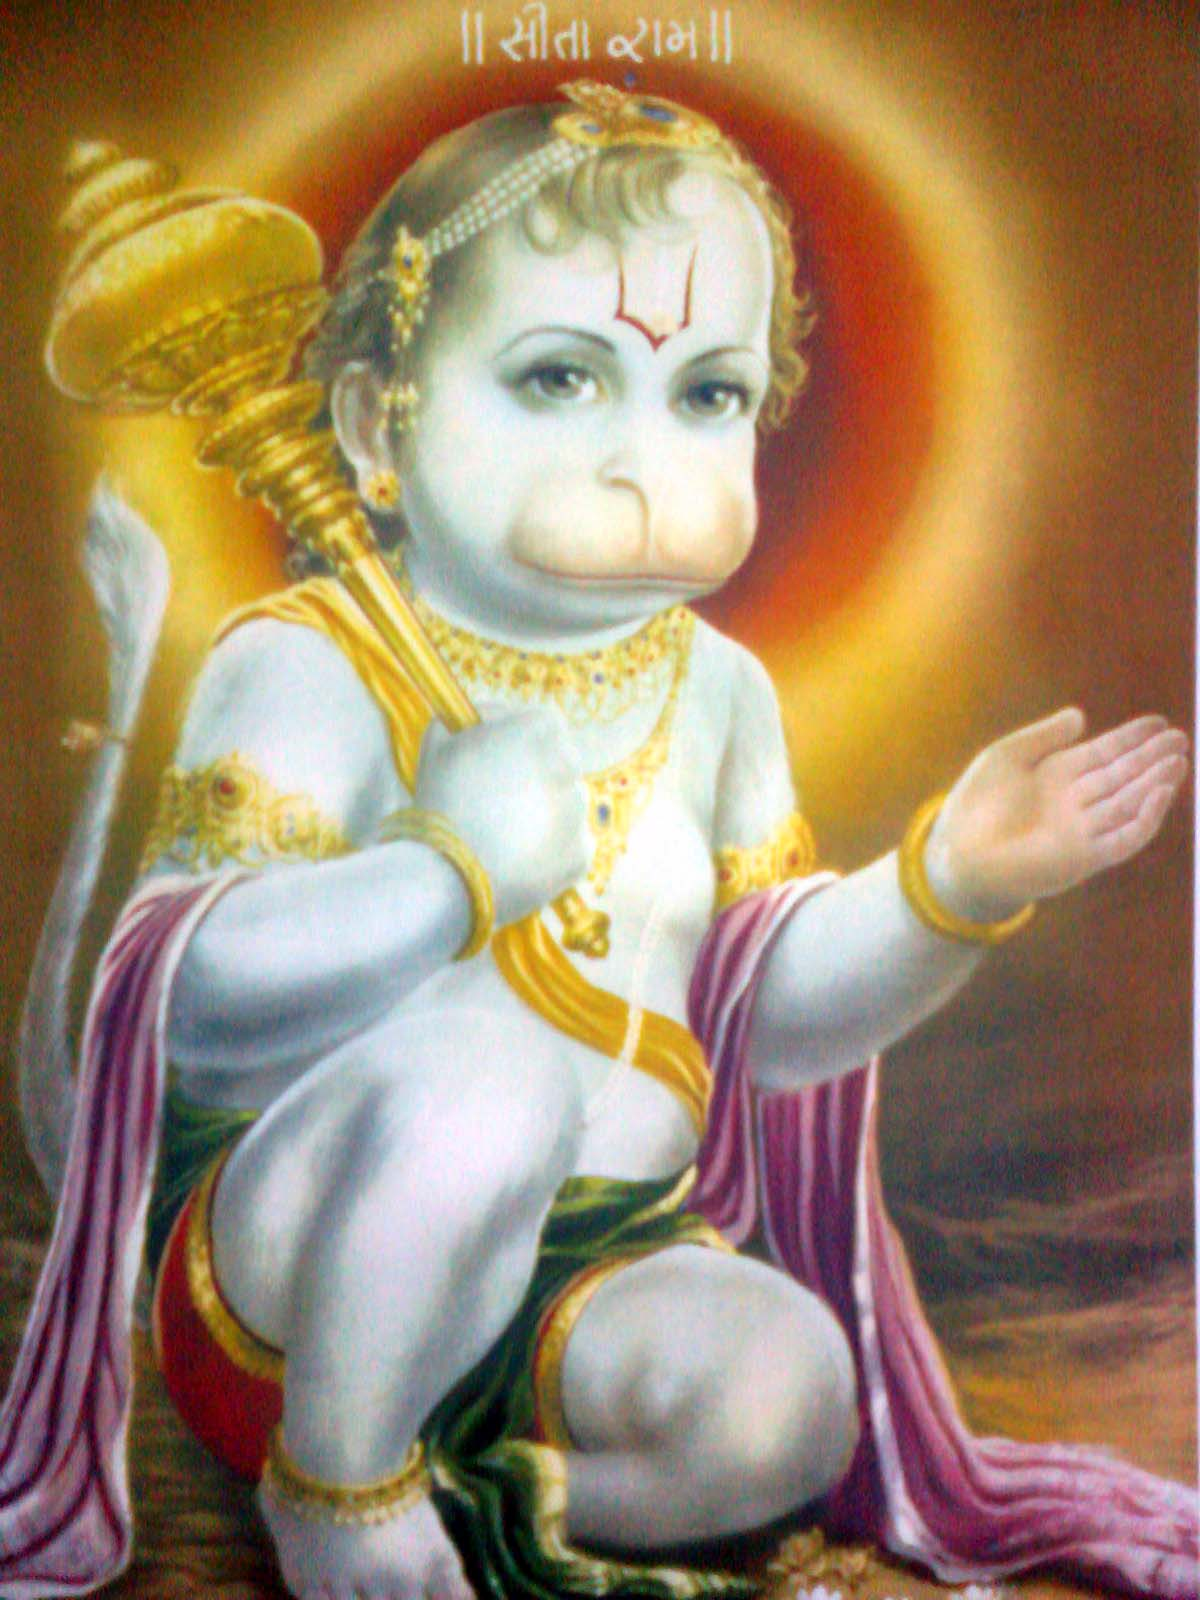 Good Quality Hanuman Wallpapers, Photos and Pictures: 05